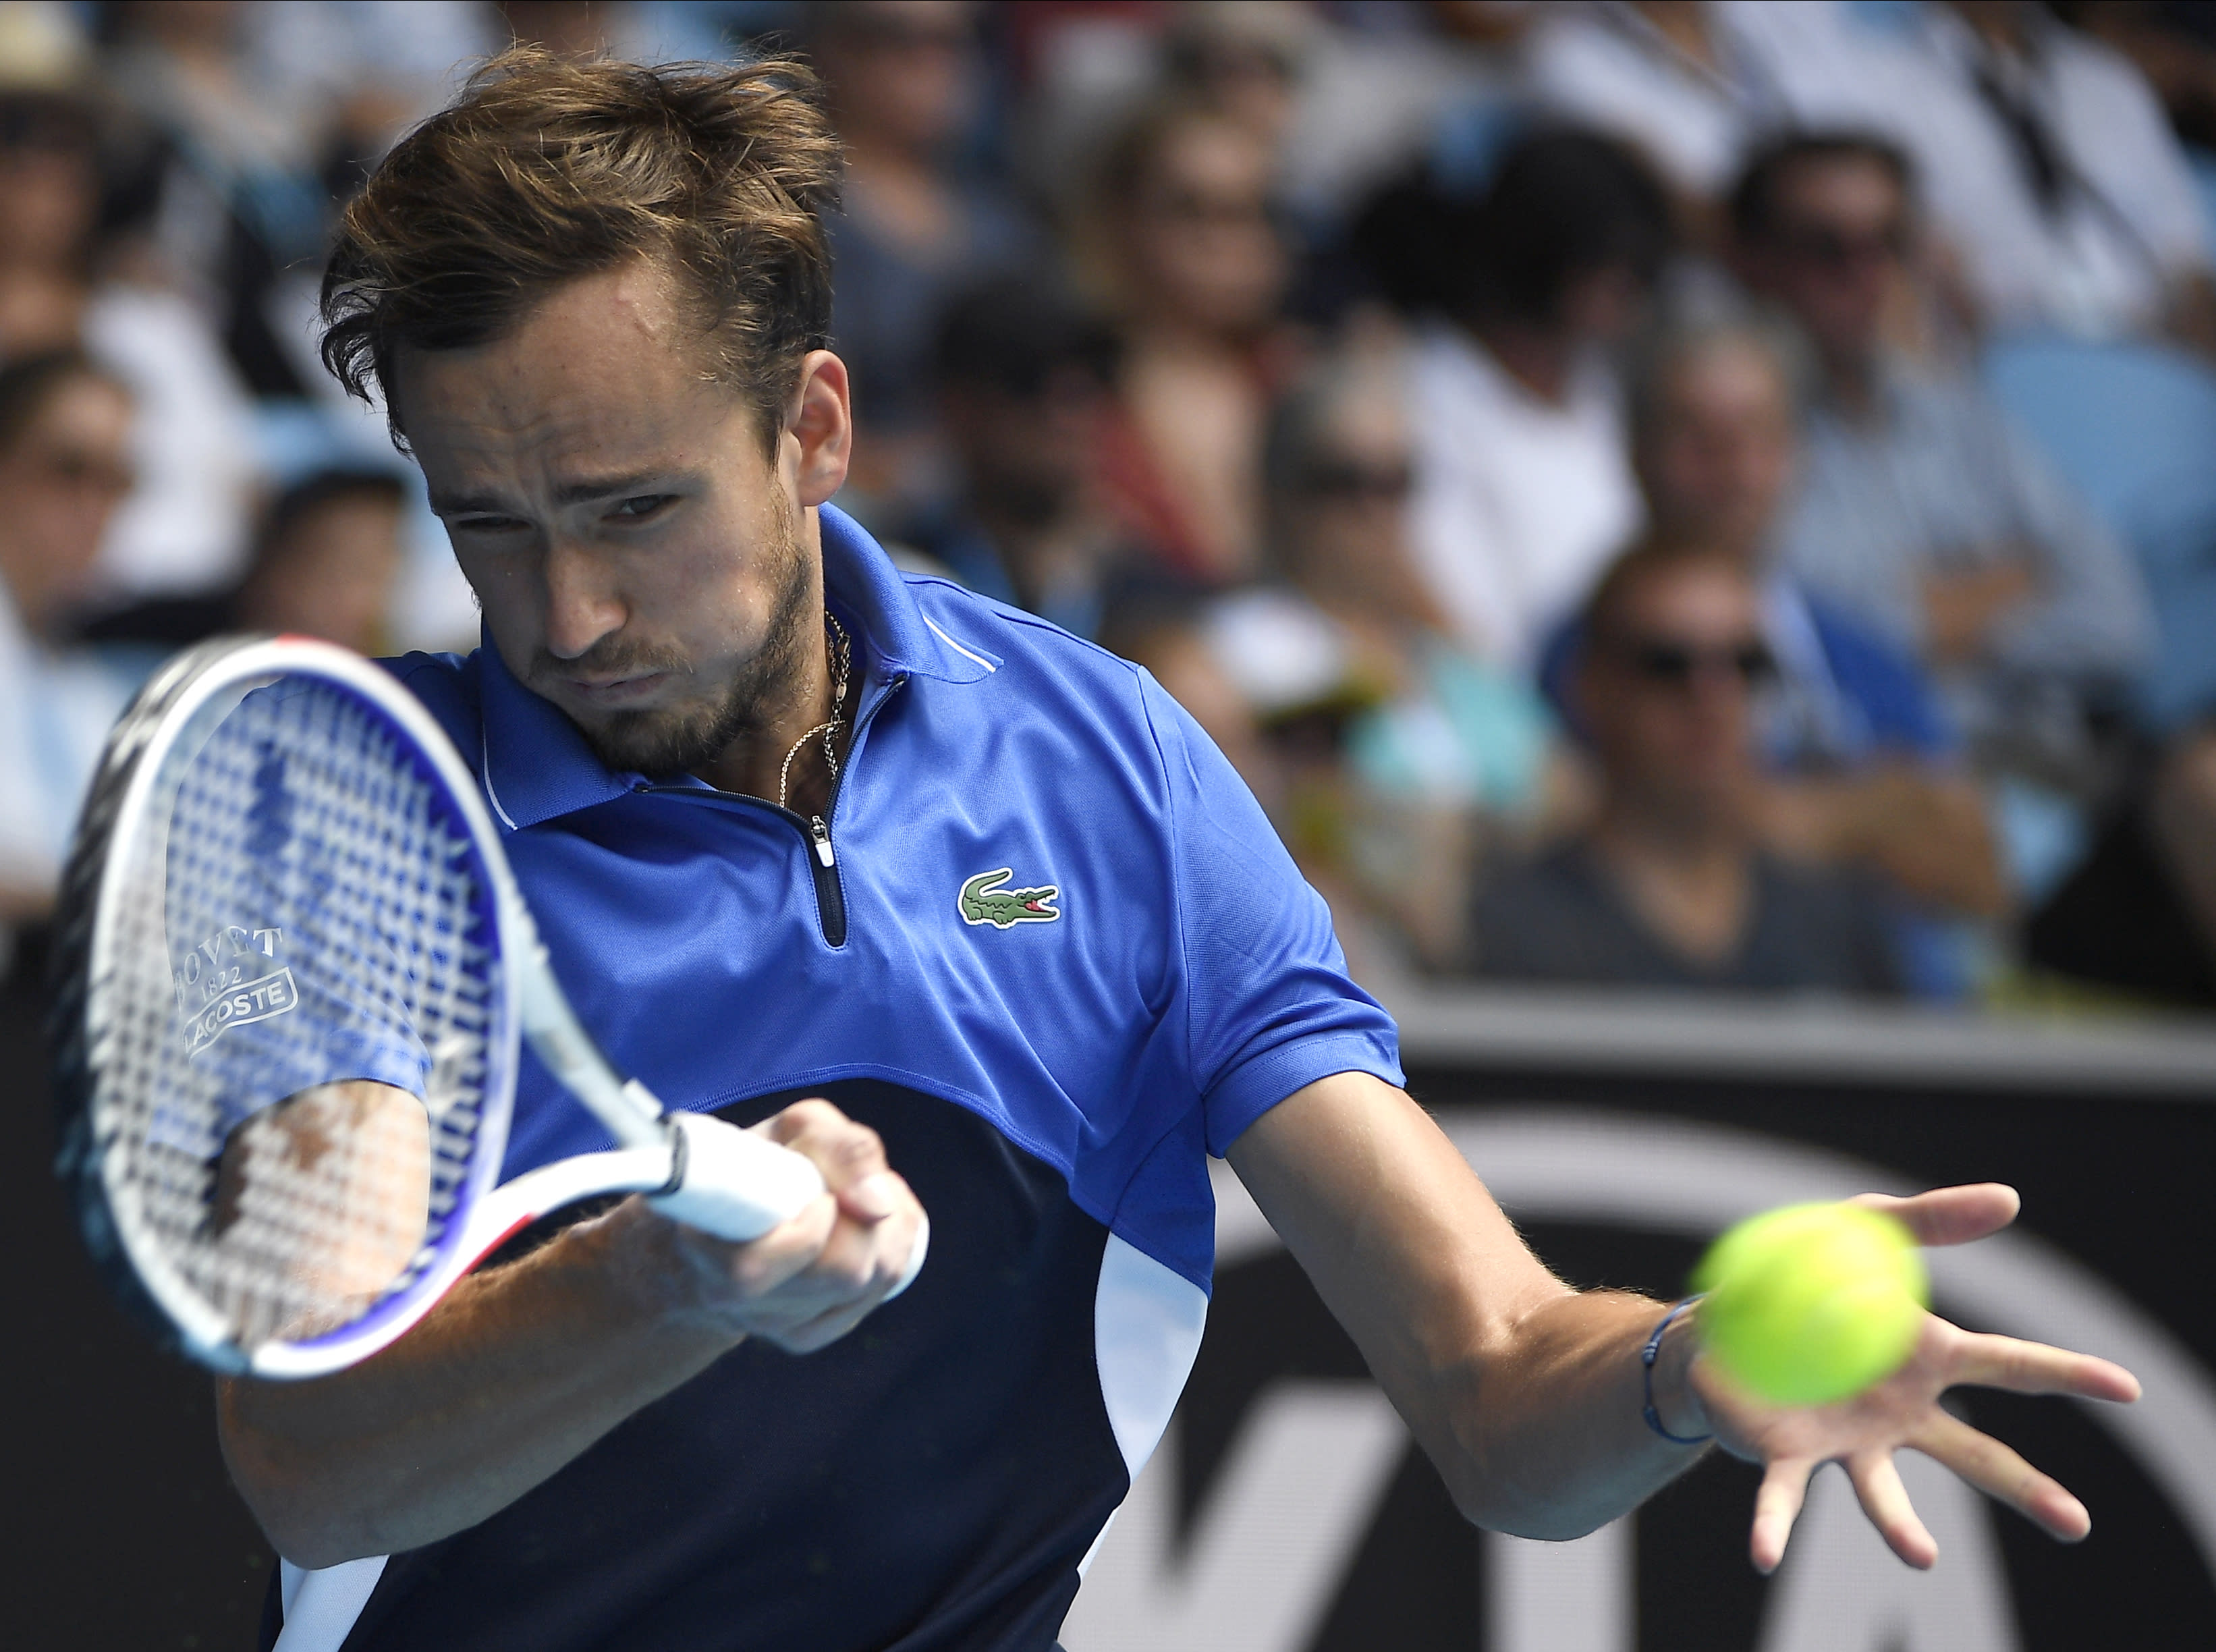 FILE - In this Jan. 27, 2020, file photo, Russia's Daniil Medvedev makes a forehand return to Switzerland's Stan Wawrinka during their fourth round singles match at the Australian Open tennis championship in Melbourne, Australia. Medvedev is scheduled to play in the U.S. Open, scheduled for Aug. 31-Sept. 13, 2020.(AP Photo/Andy Brownbill, File)